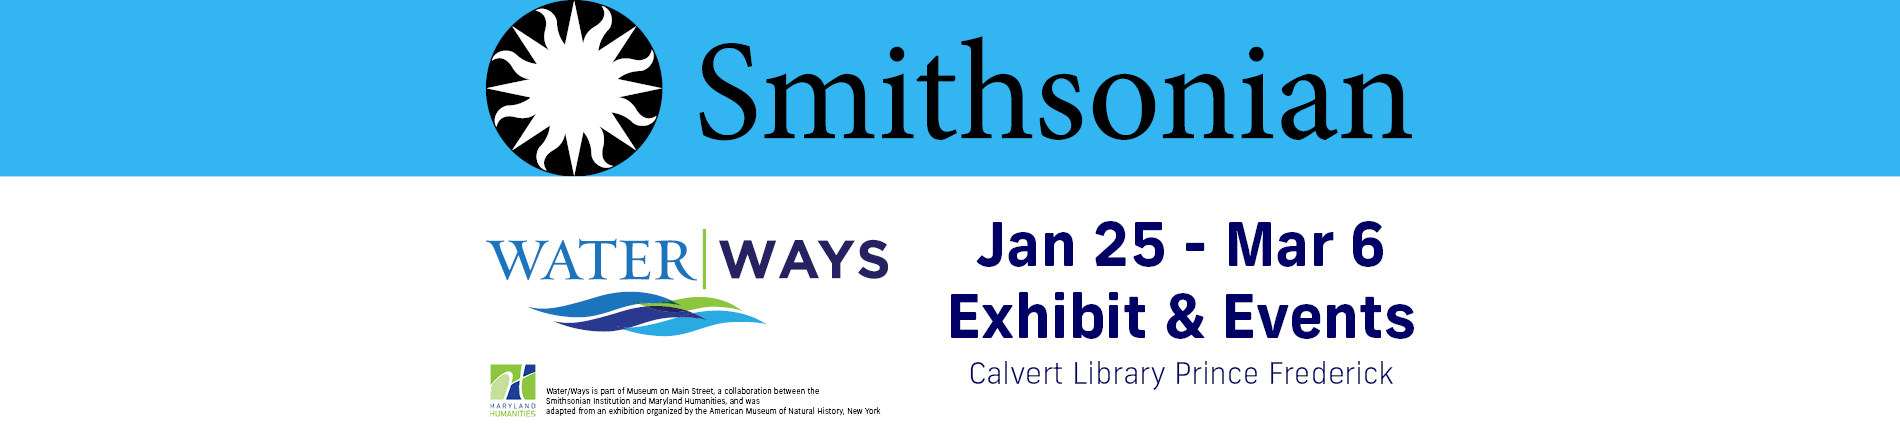 Water/Ways Smithsonian Exhibit and Events January 25 - March 4